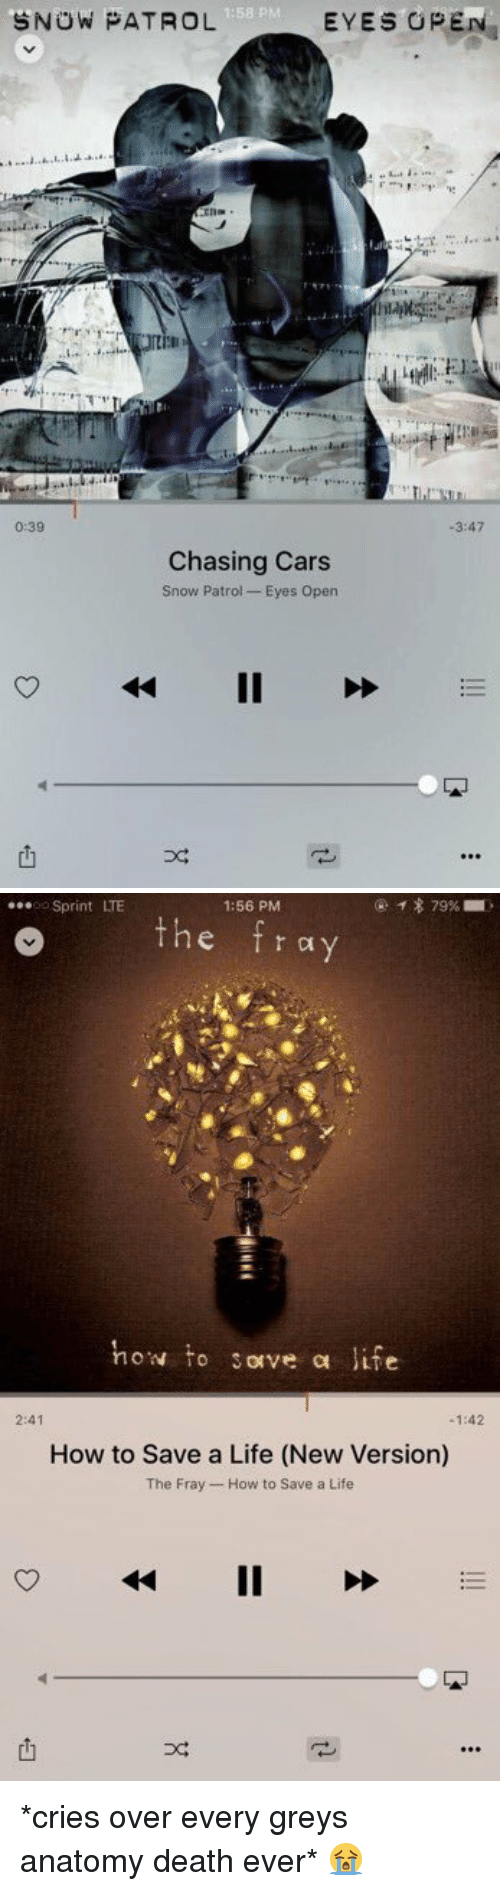 the fray: 1:58 PM  OPEN  EYES  SNUW PATROL  3:47  30:39  Chasing Cars  Snow Patrol  Eyes Open   1:56 PM  ...oo Sprint LTE  the f  r ay  how to sove a life  1:42  2:41  How to Save a Life (New Version)  The Fray  How to Save a Life *cries over every greys anatomy death ever* 😭